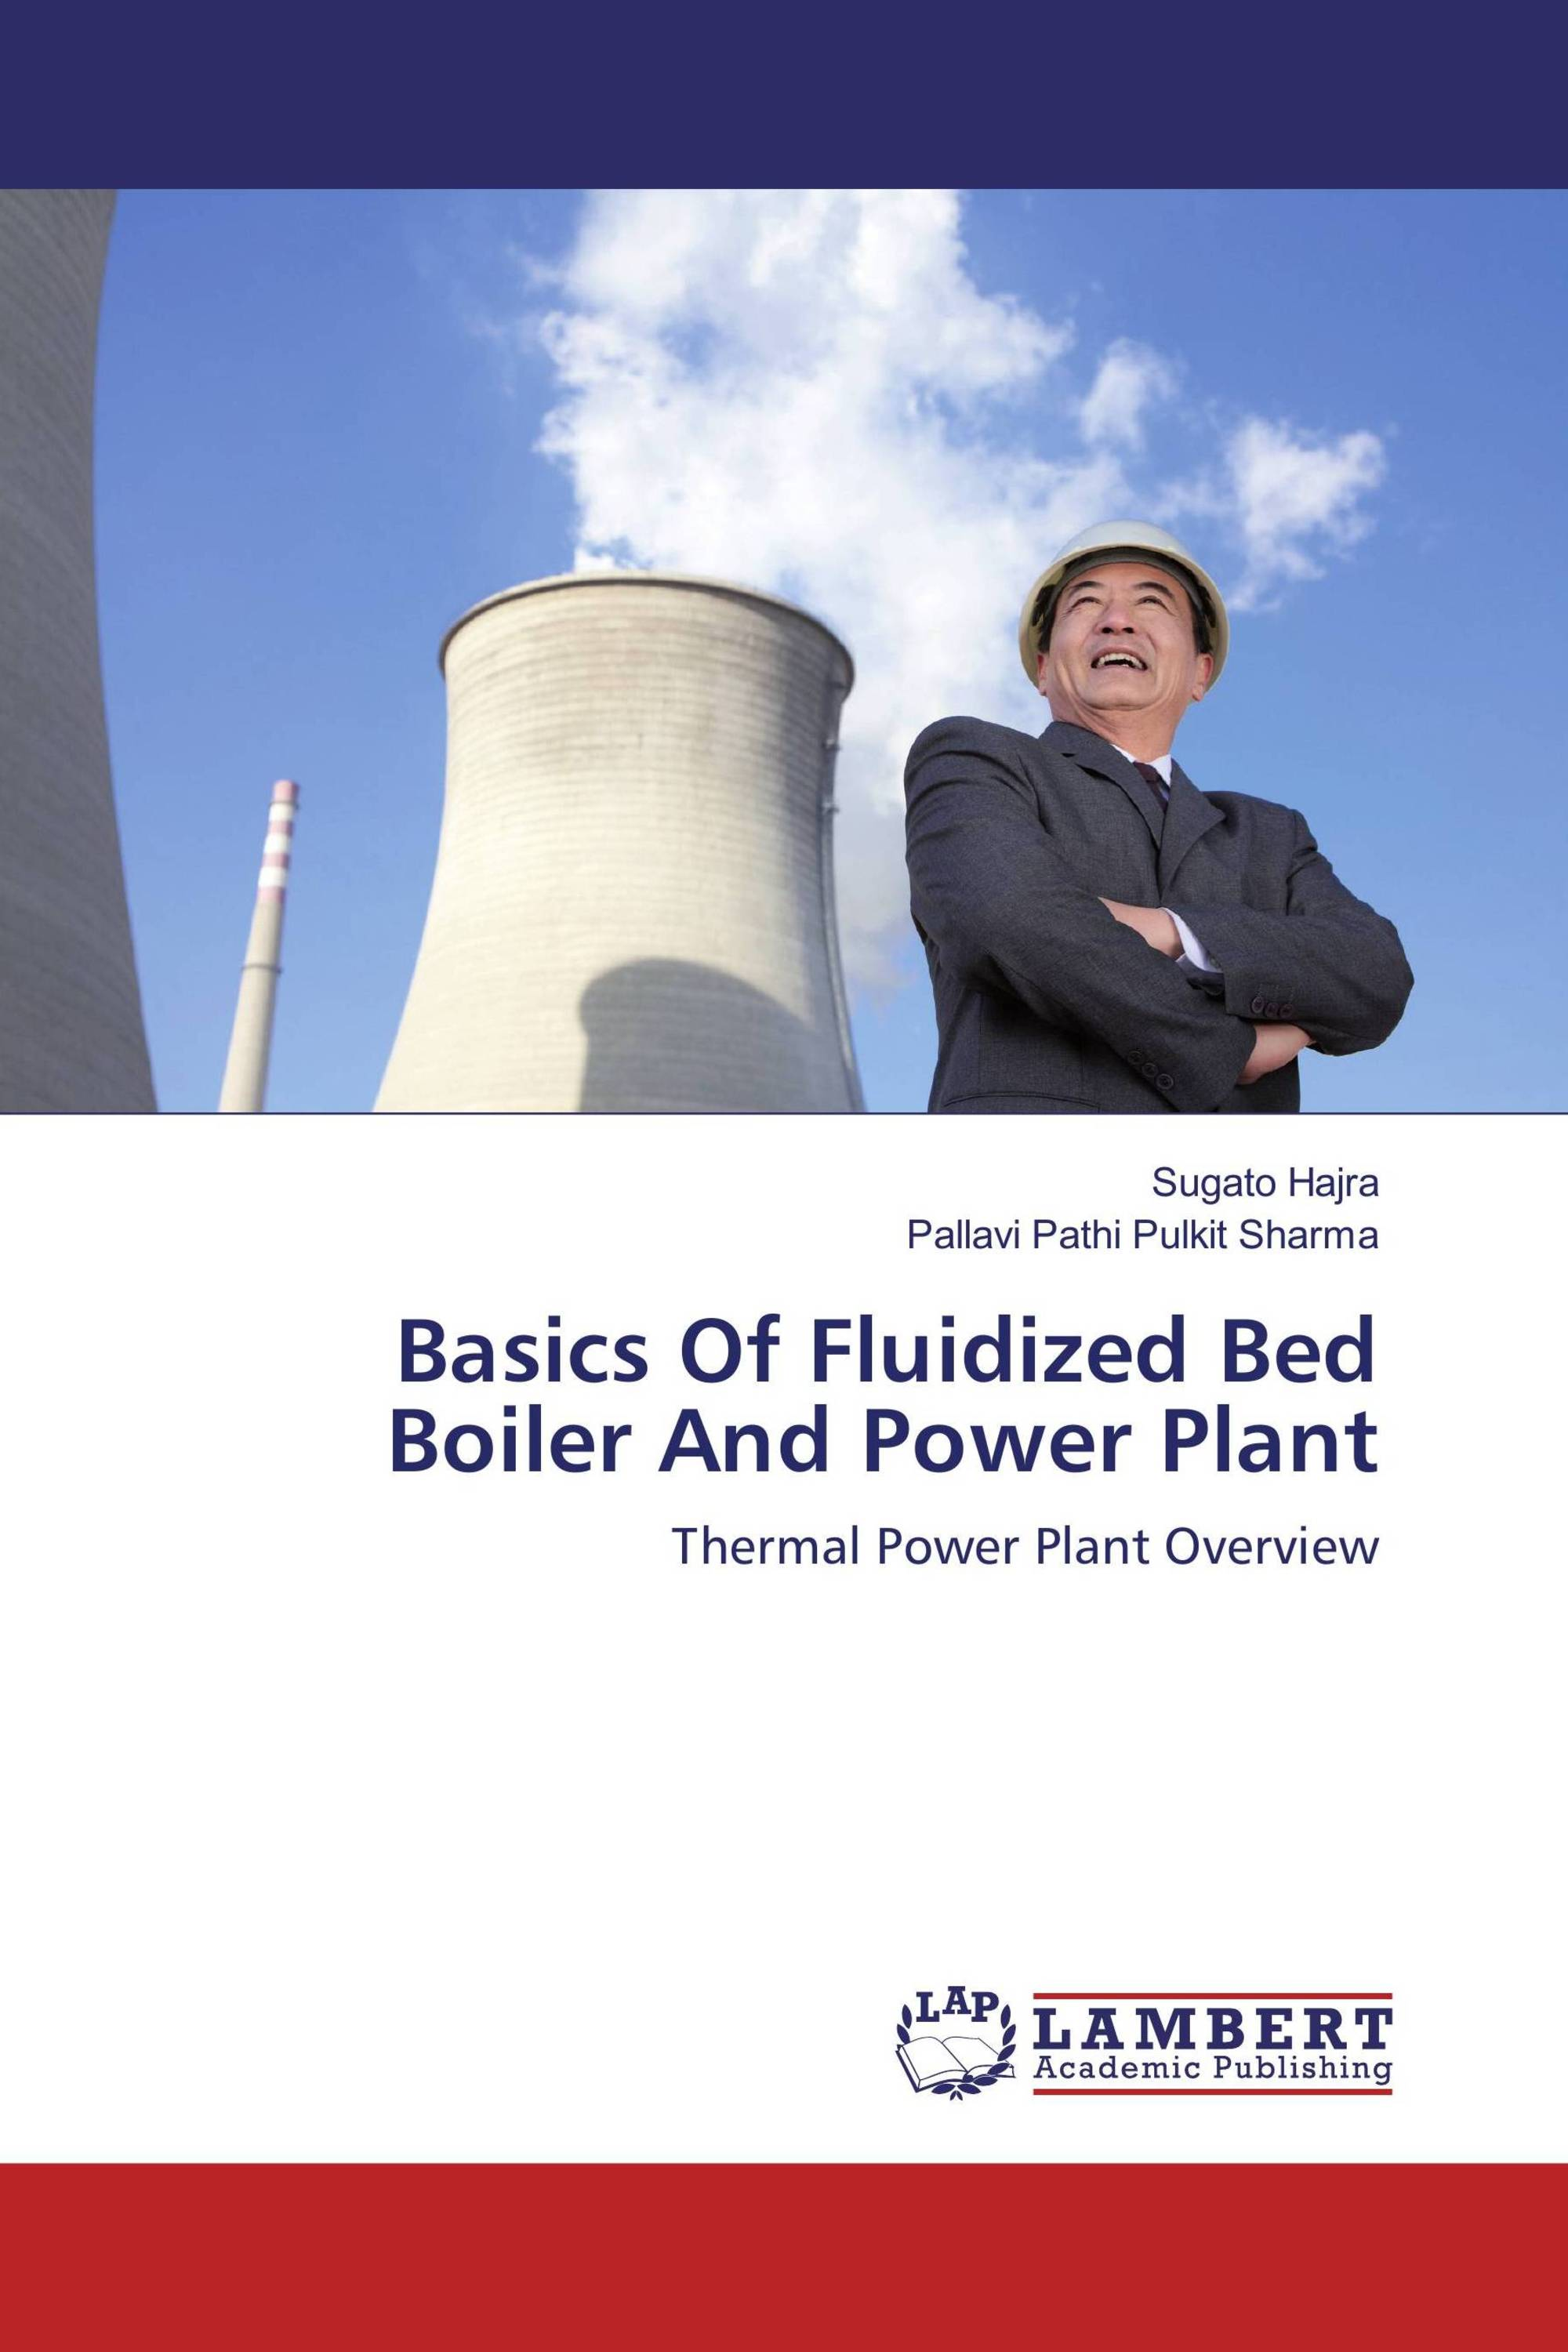 Basics Of Fluidized Bed Boiler And Power Plant 978 3 659